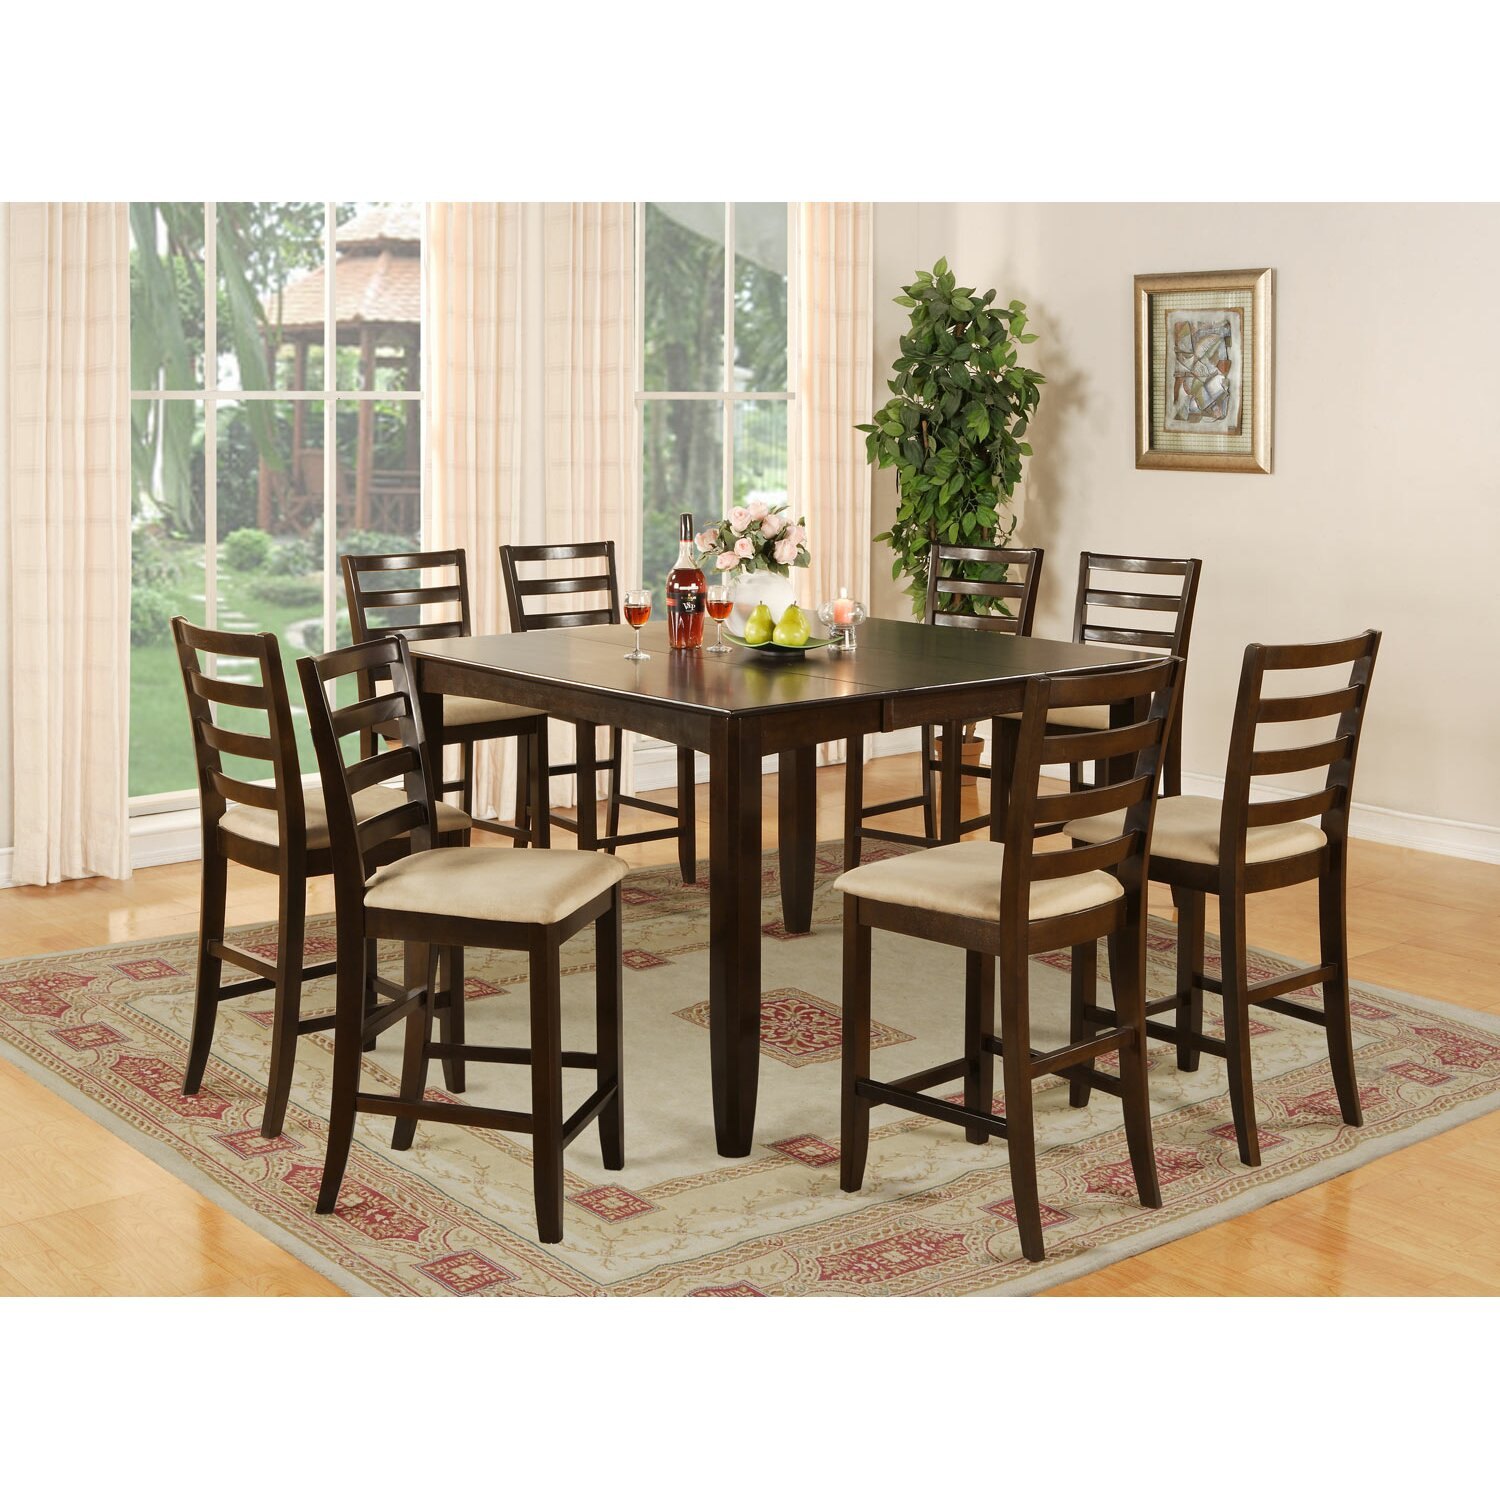 Red Barrel Studio Tamarack 9 Piece Counter Height Dining